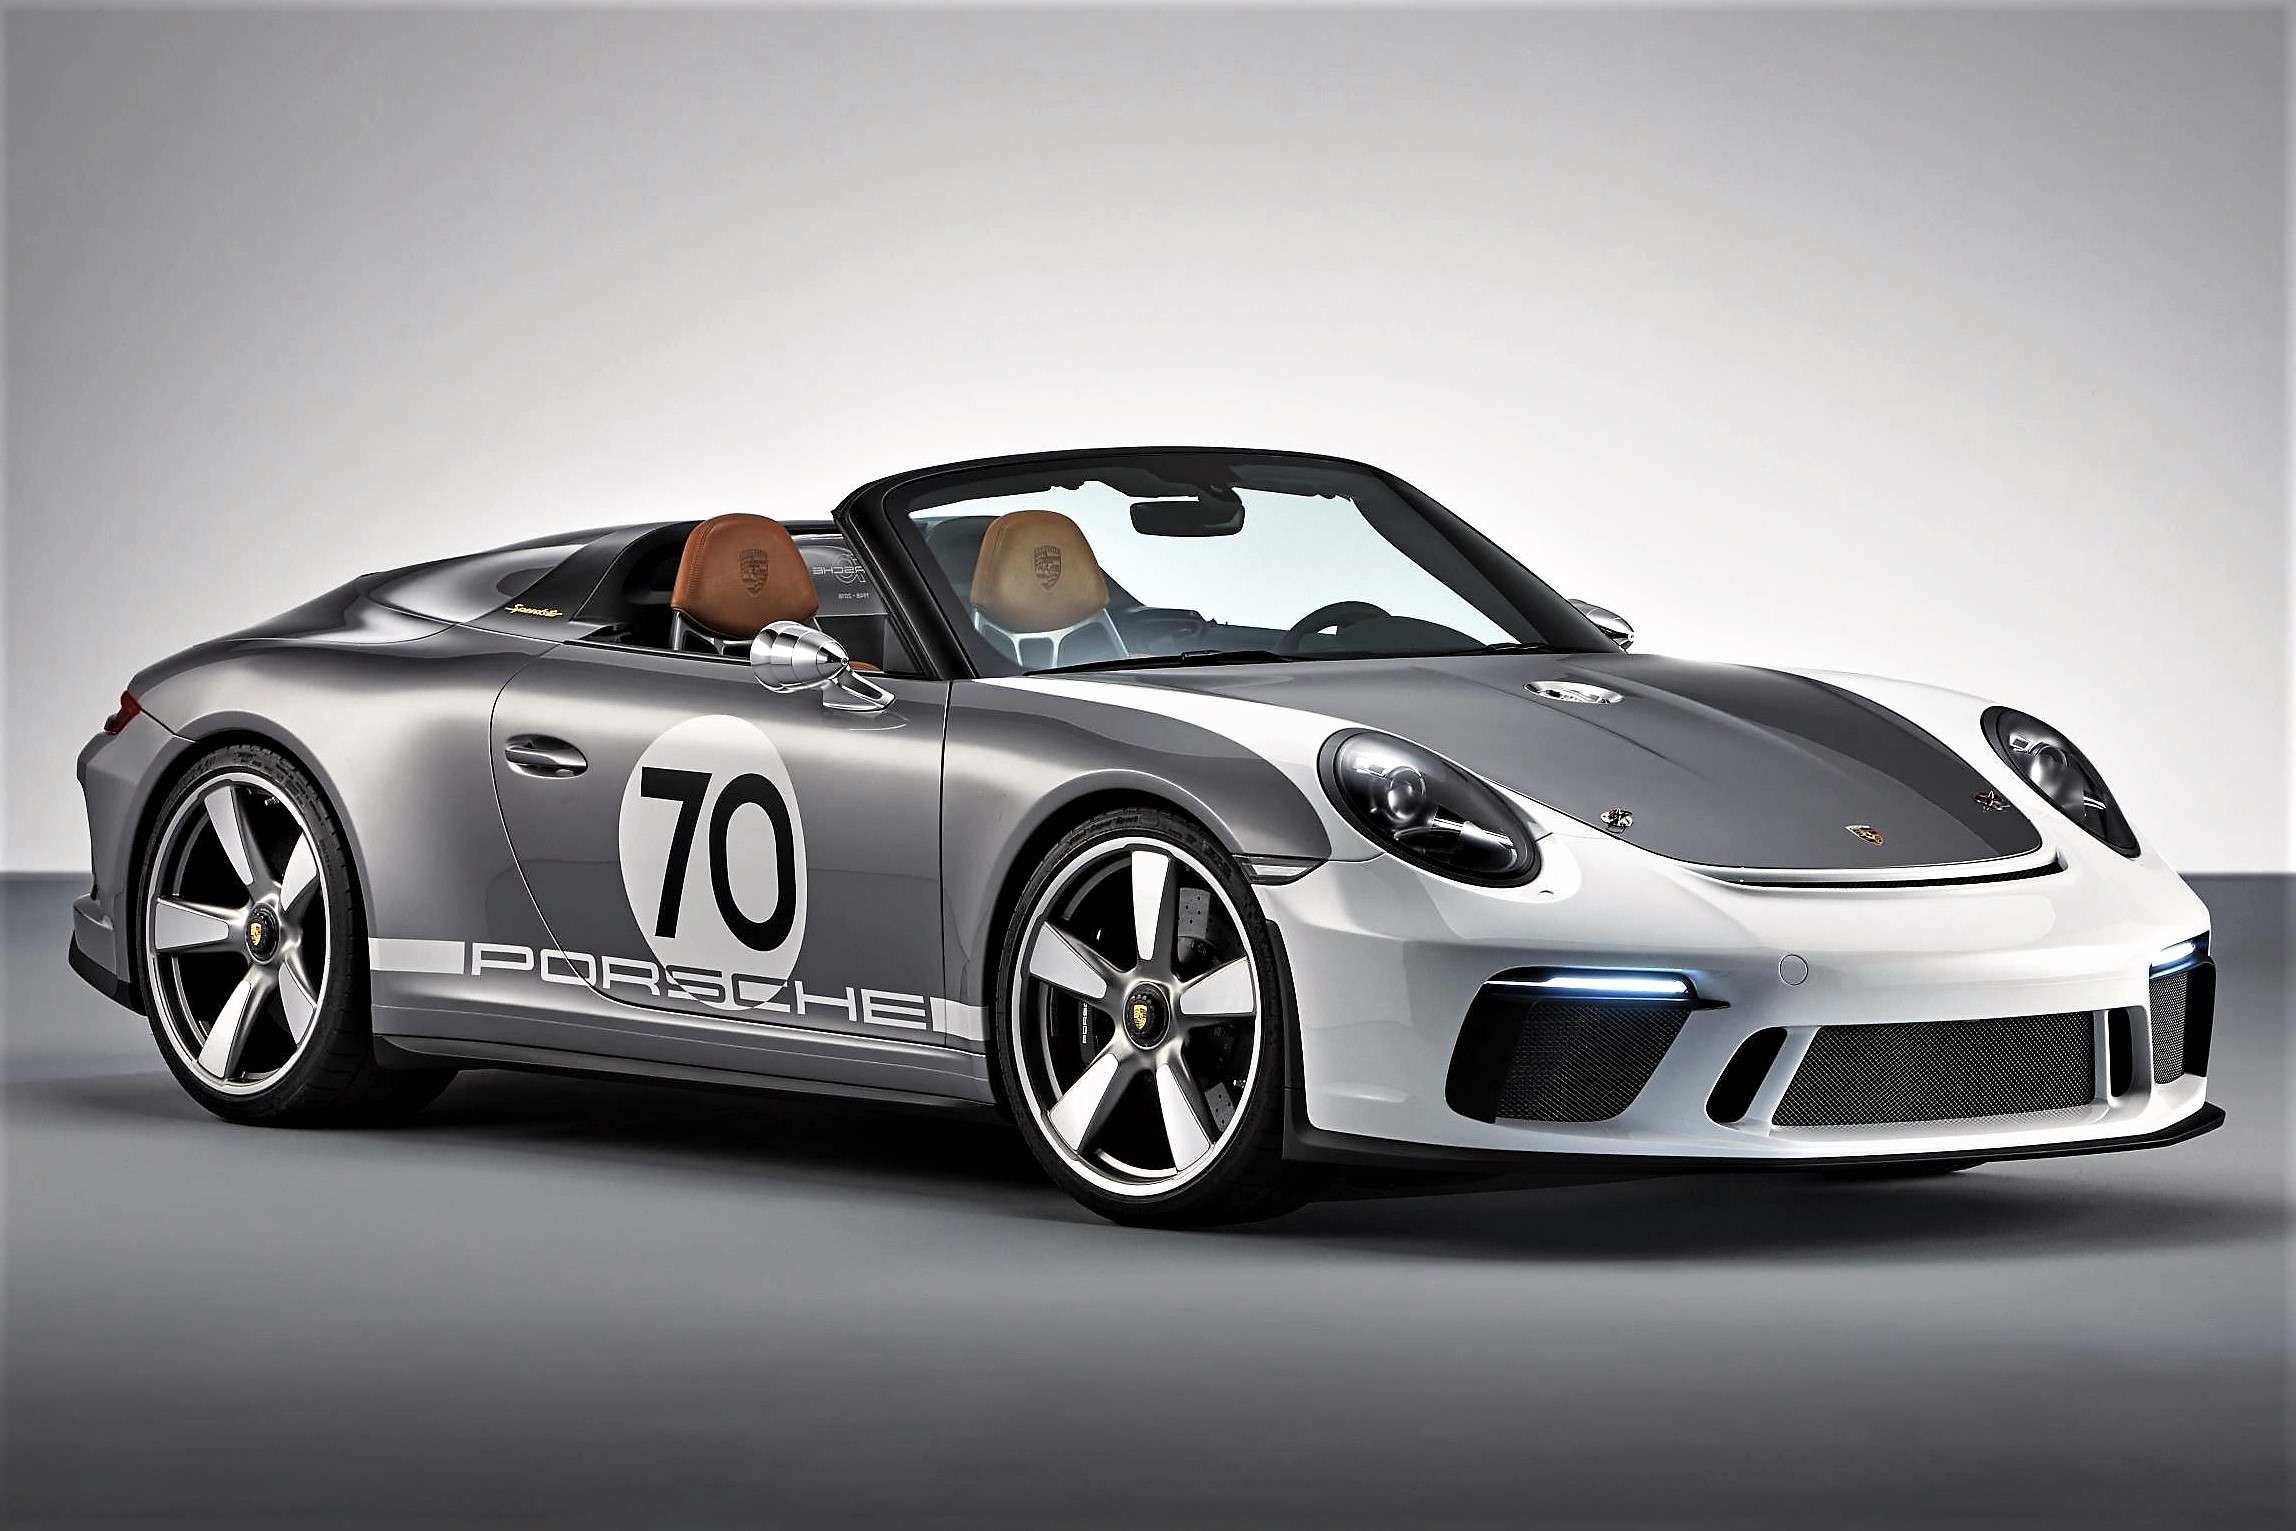 The Porsche Speedster Concept reflects the stripped-down style of earlier Speedsters | Porsche photos